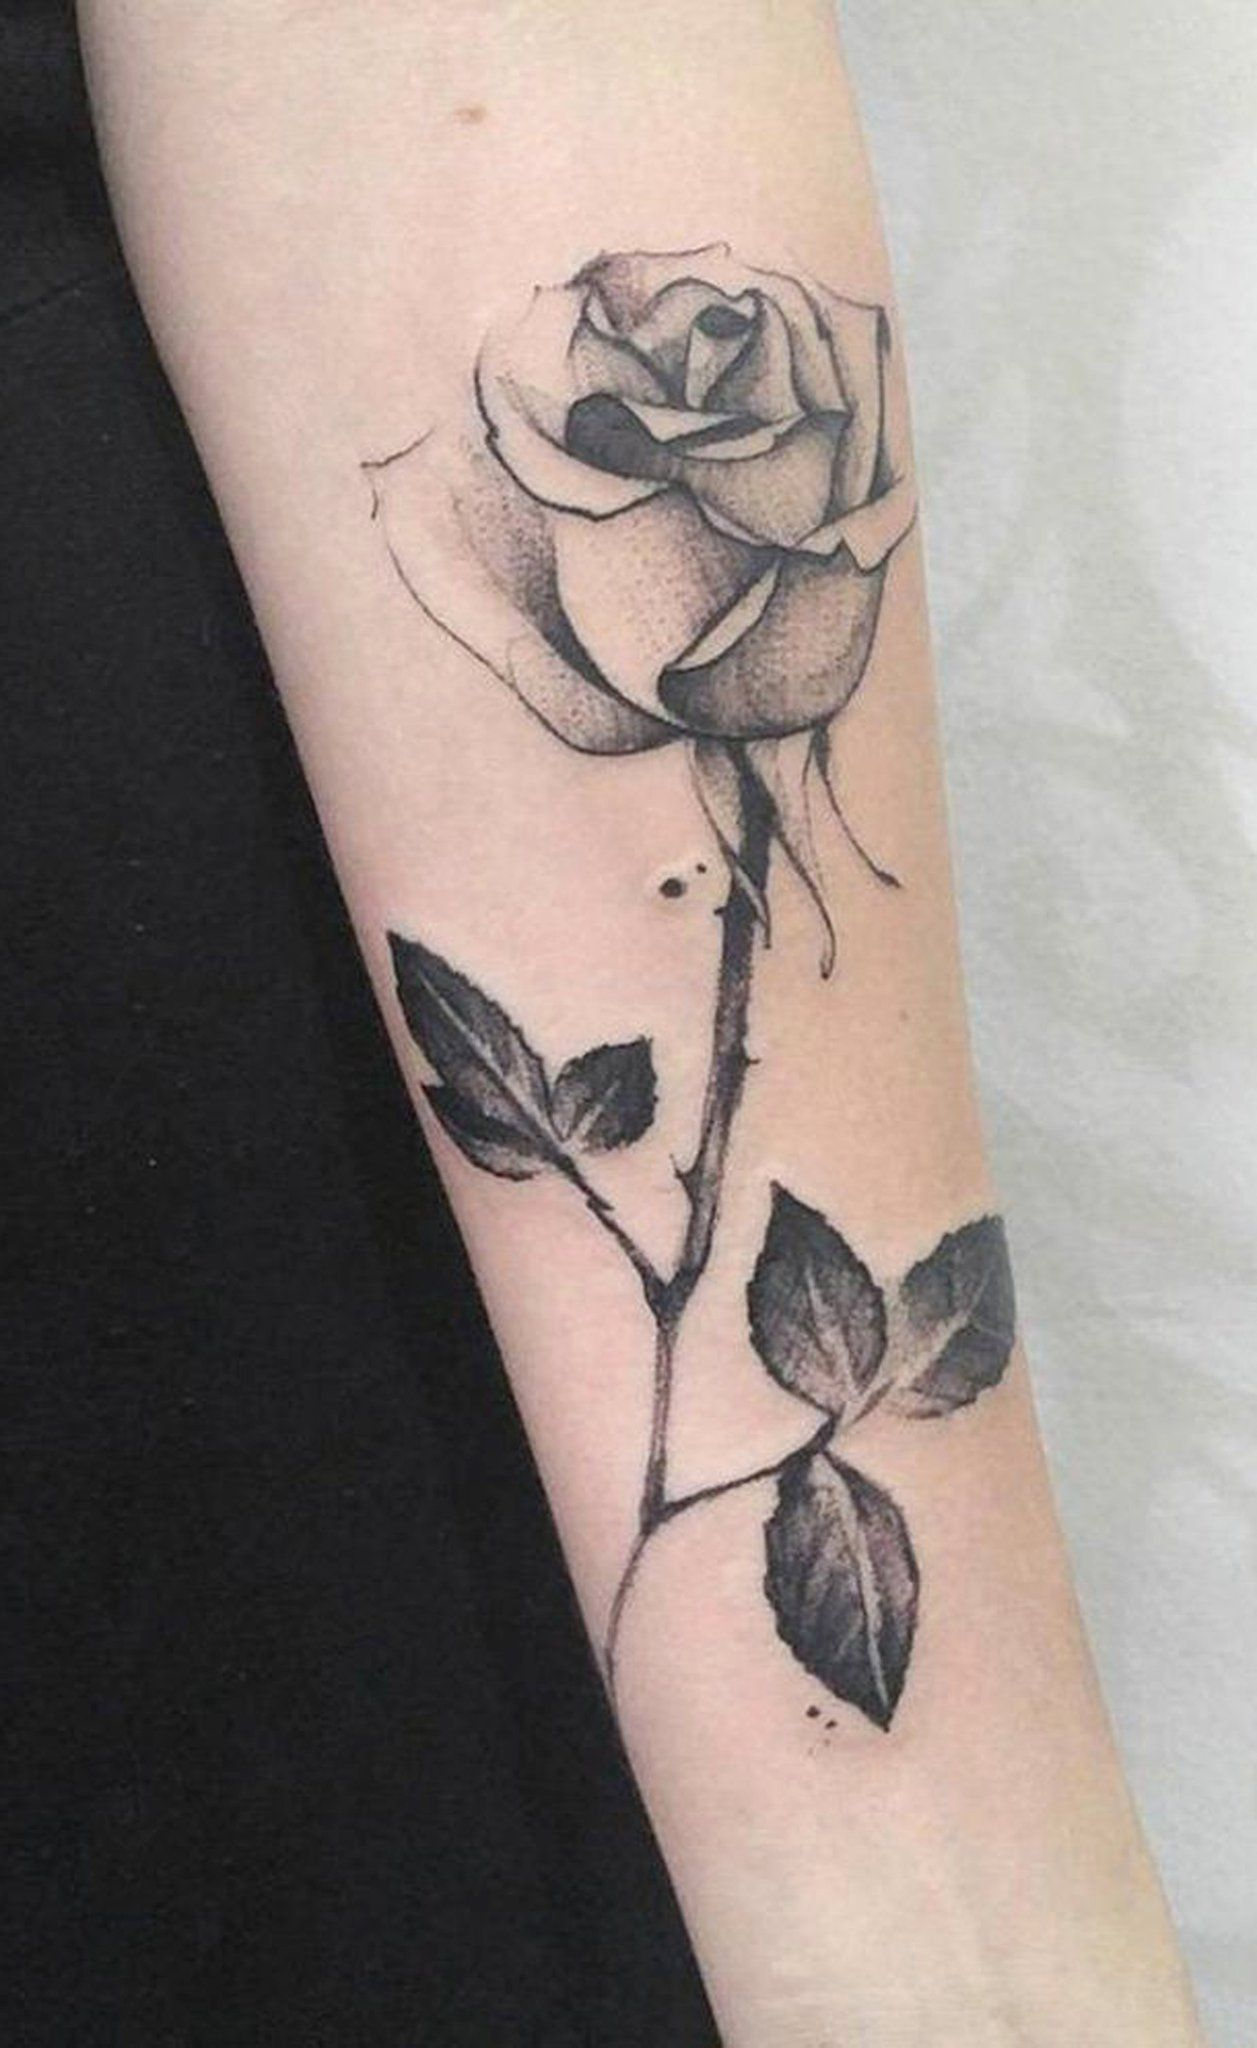 Realistic Single Rose Forearm Placement Tattoo Ideas Simple